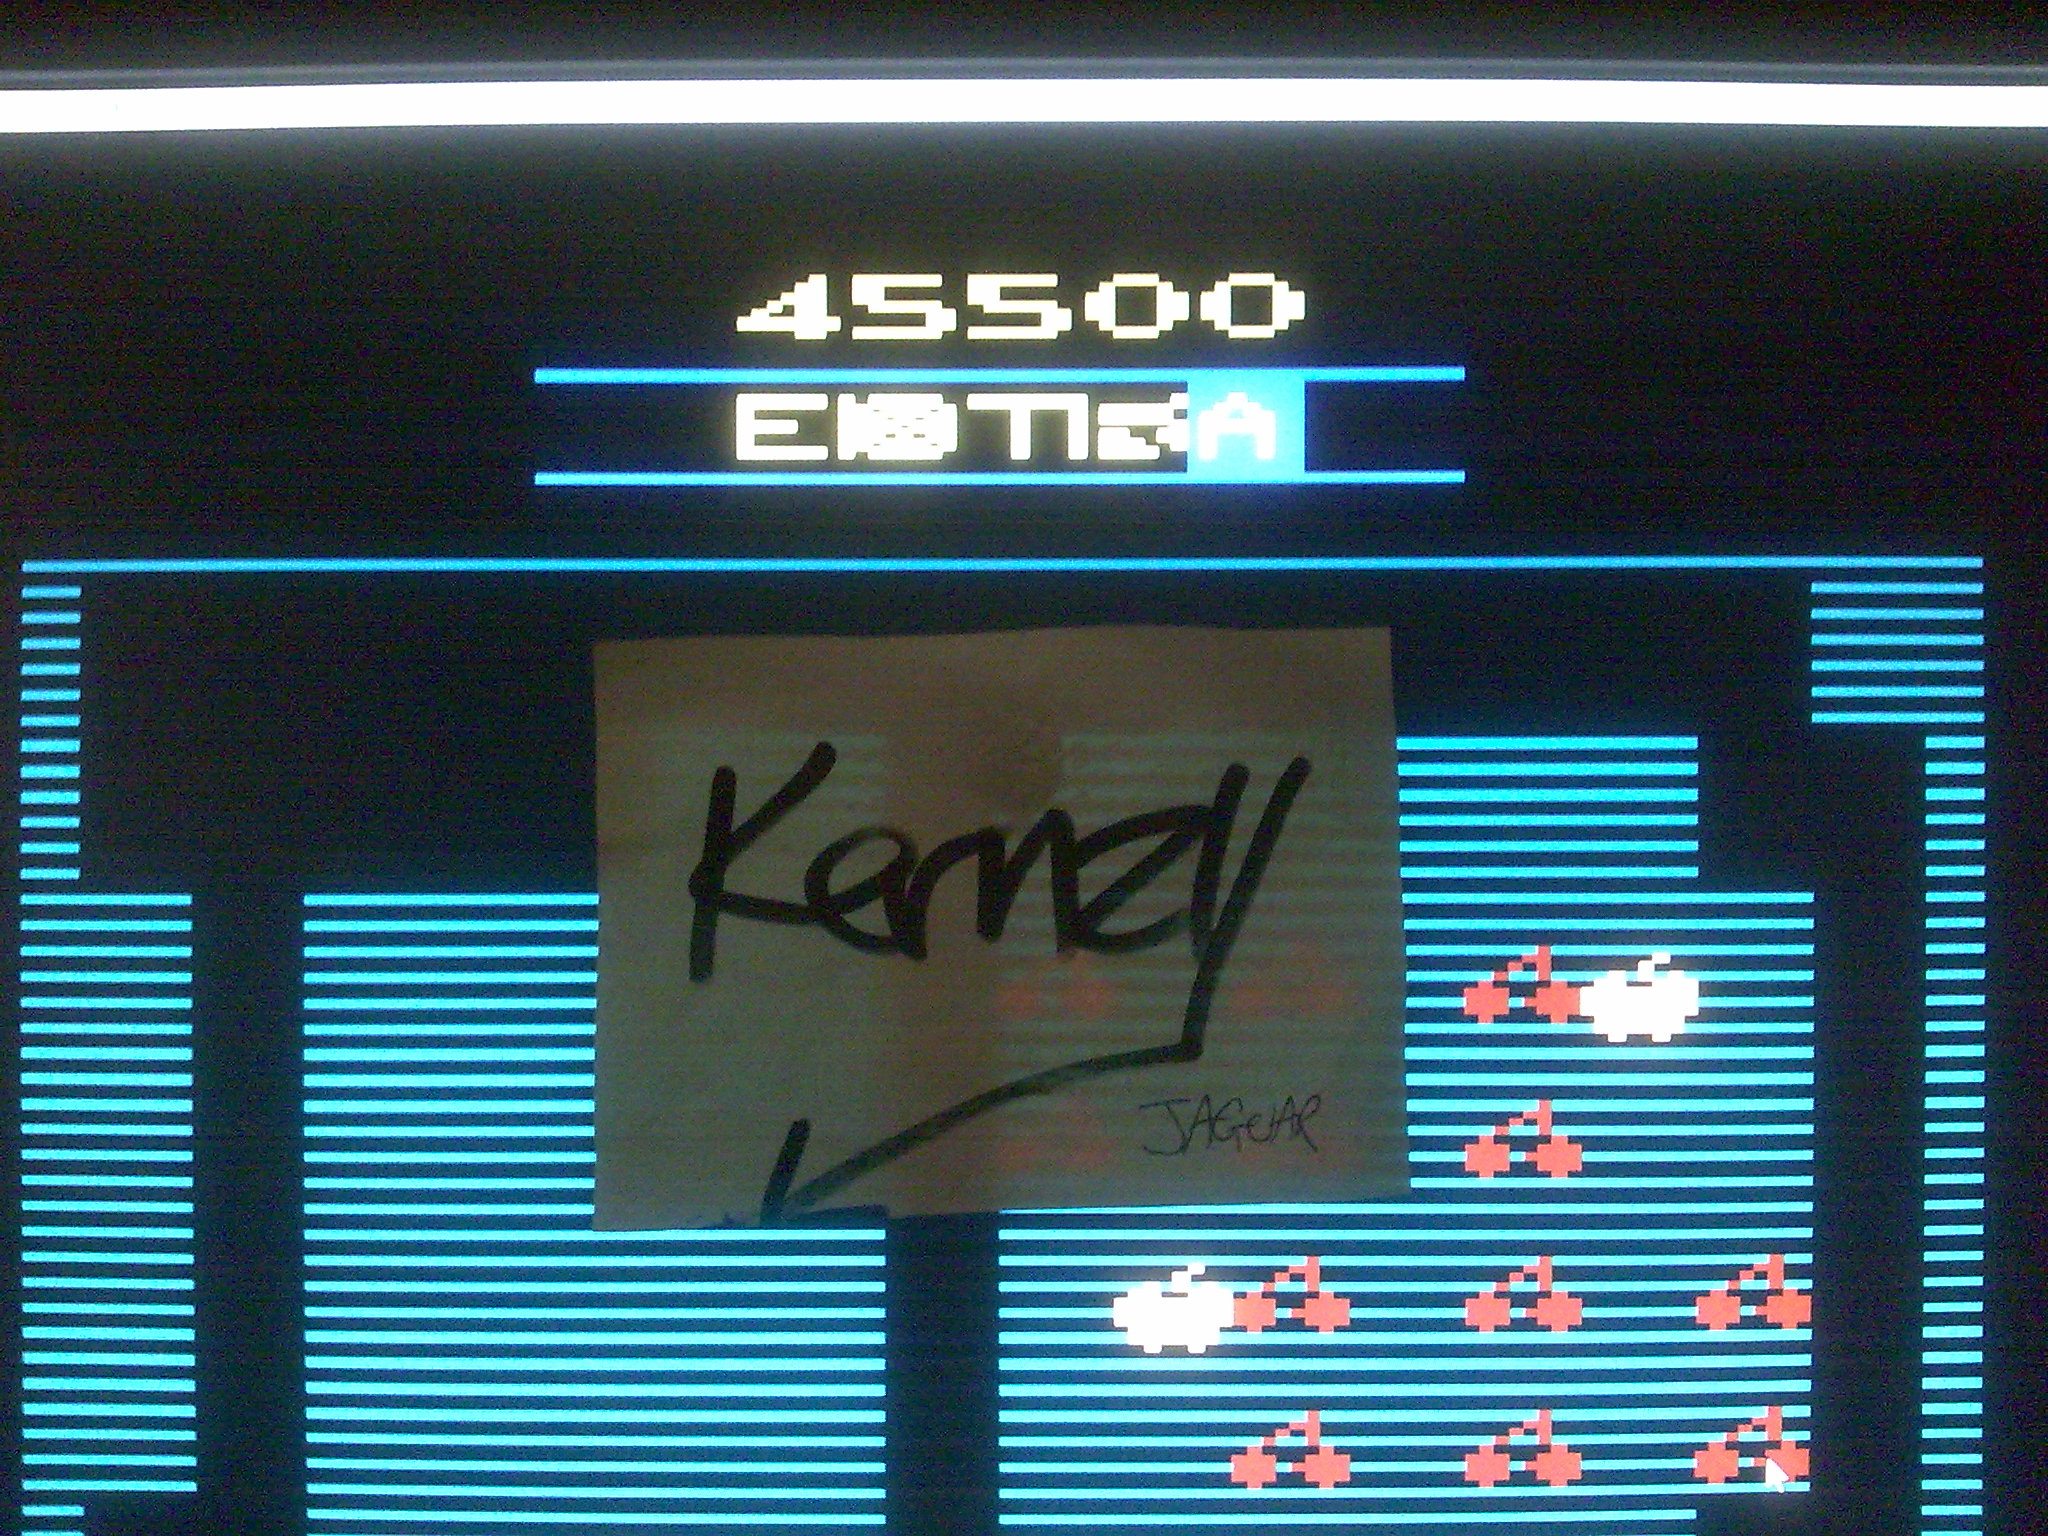 kernzy: Mr. Do! (Atari 2600 Emulated) 45,500 points on 2014-10-12 07:35:13